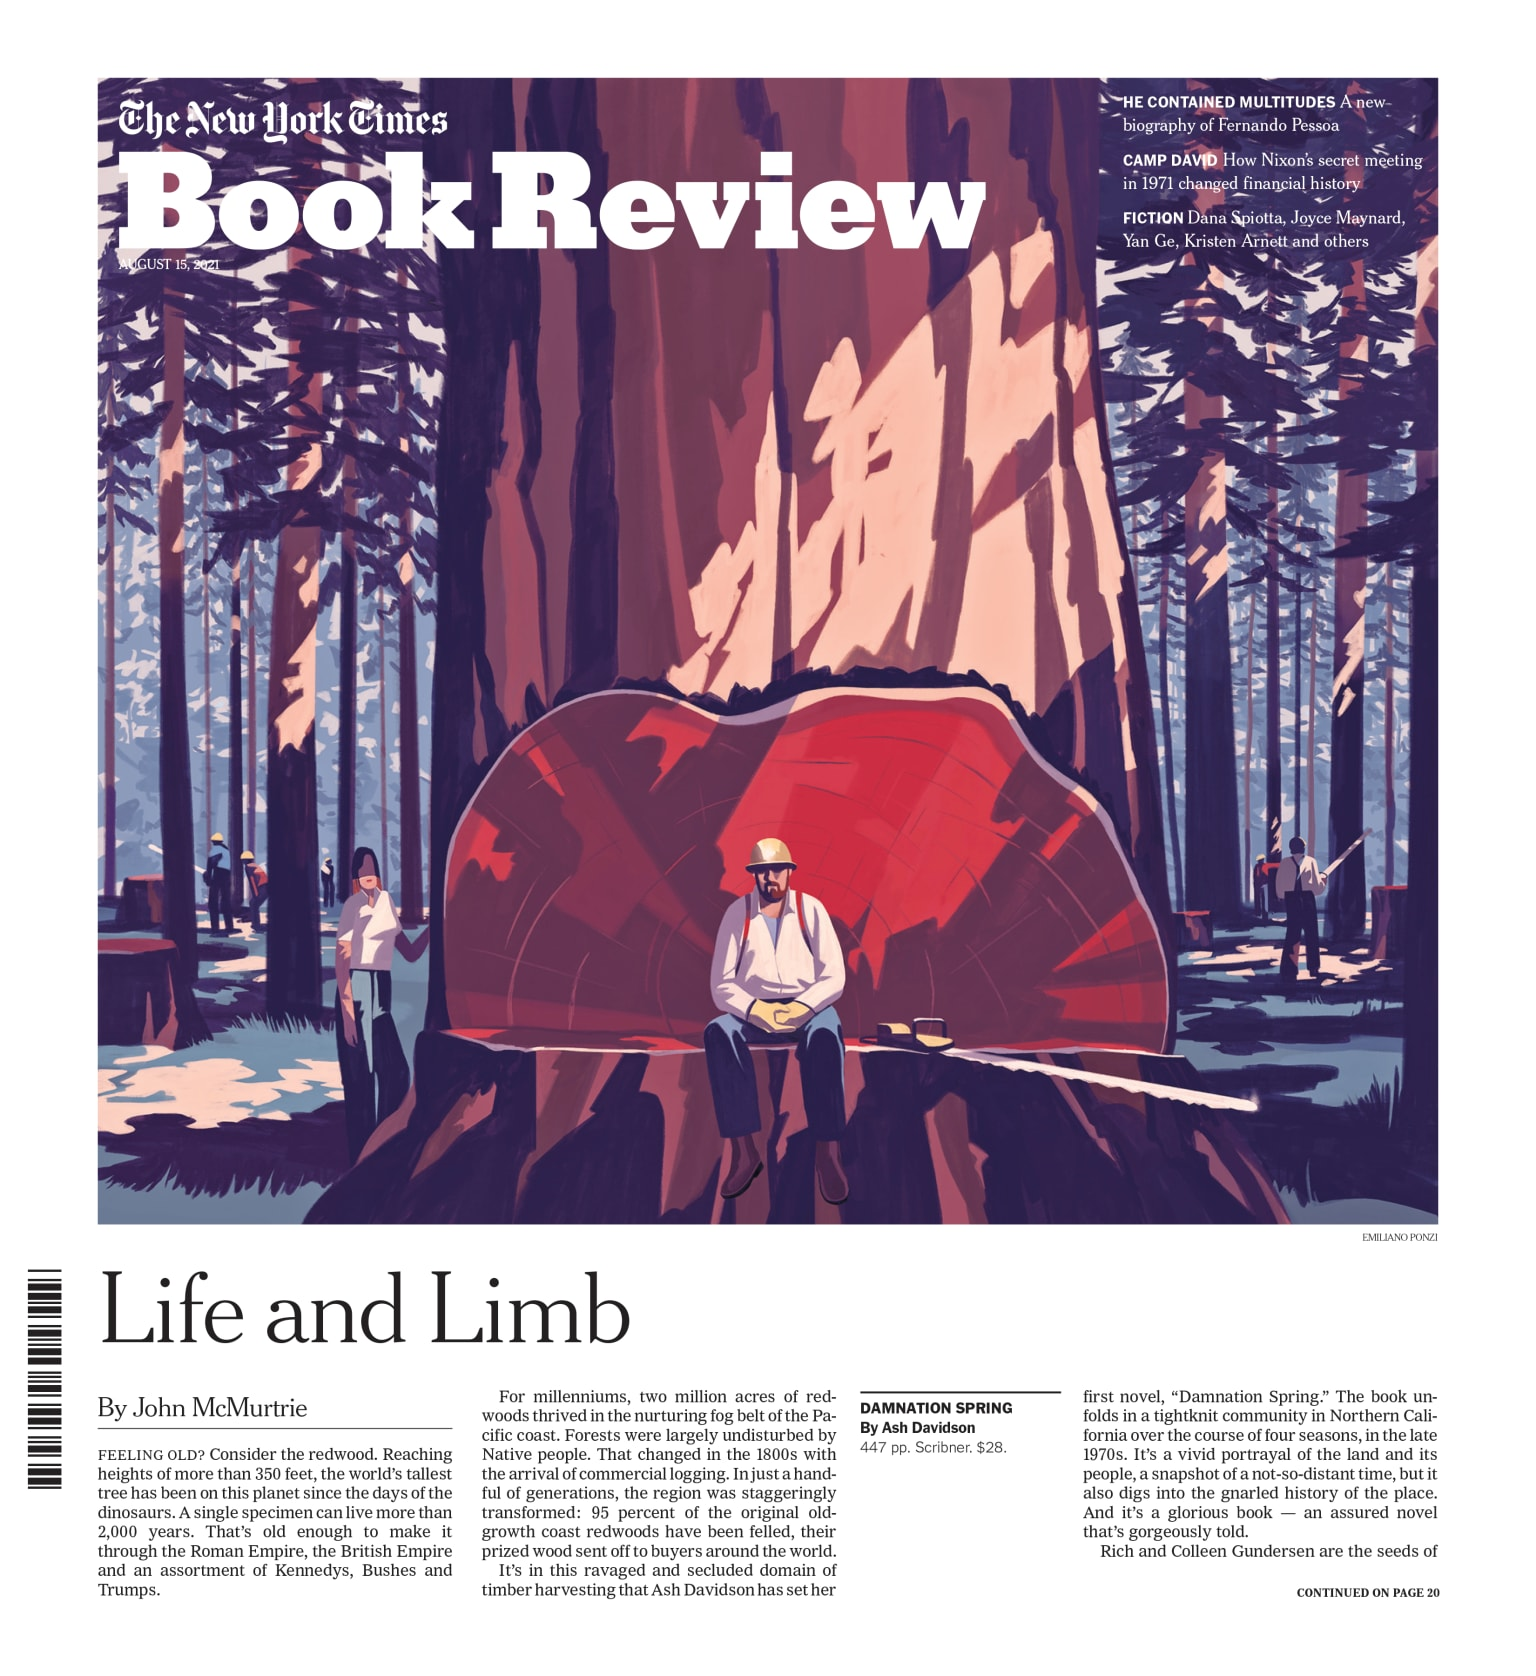 Life and Limb • The New York Times Book Review cover